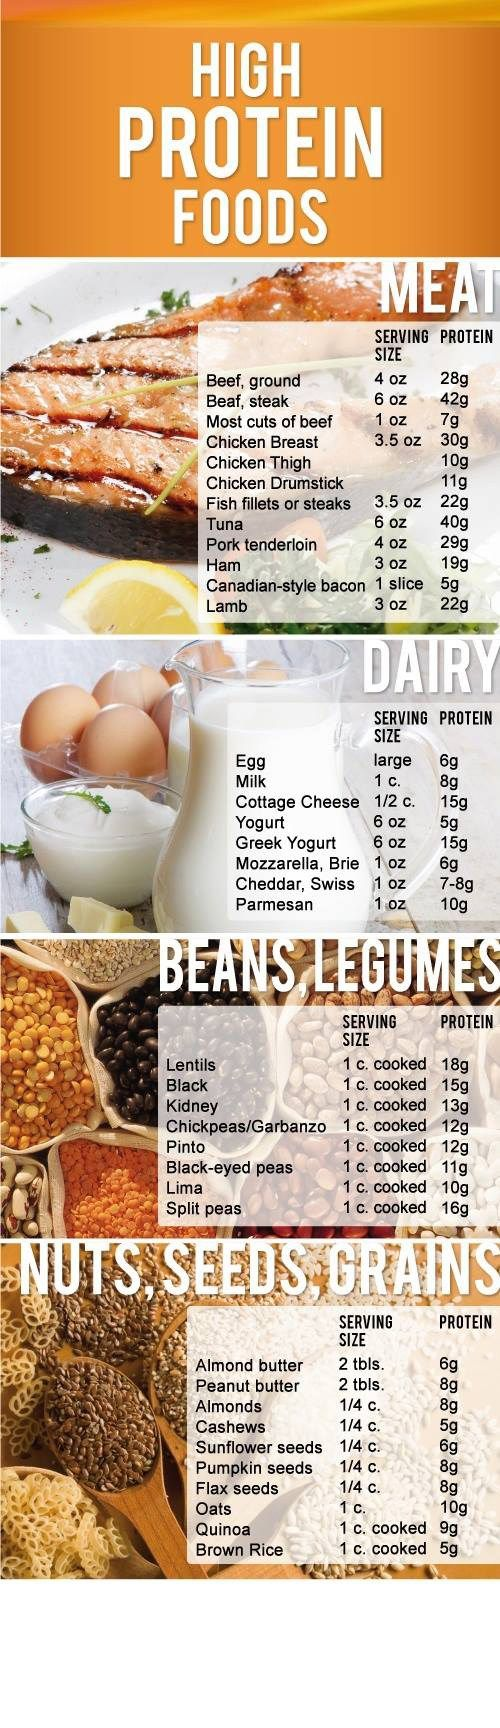 High Protein Foods for bodybuilders. #Diet #Nutrient